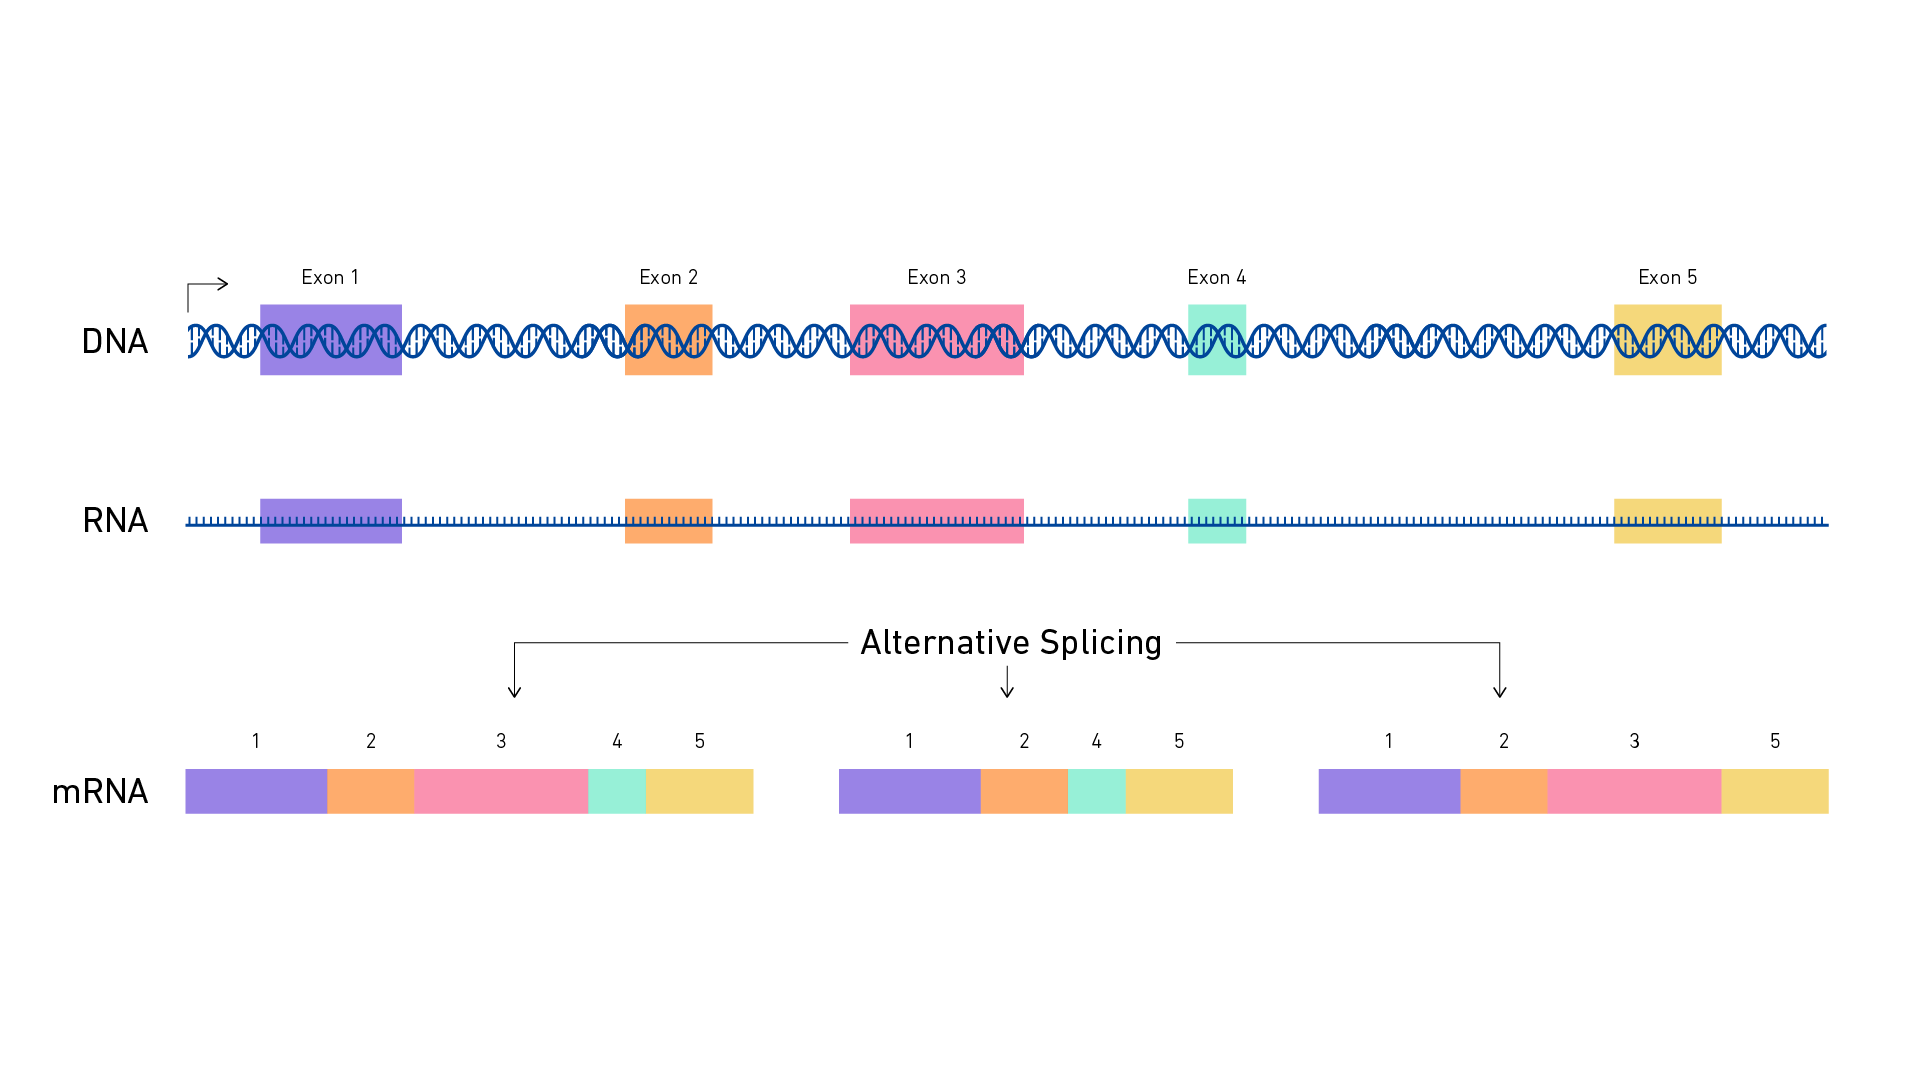 An overview of alternative splicing. Shows how DNA, transcribed into RNA, can then be arranged in different way to produce a diversity of mRNAs.